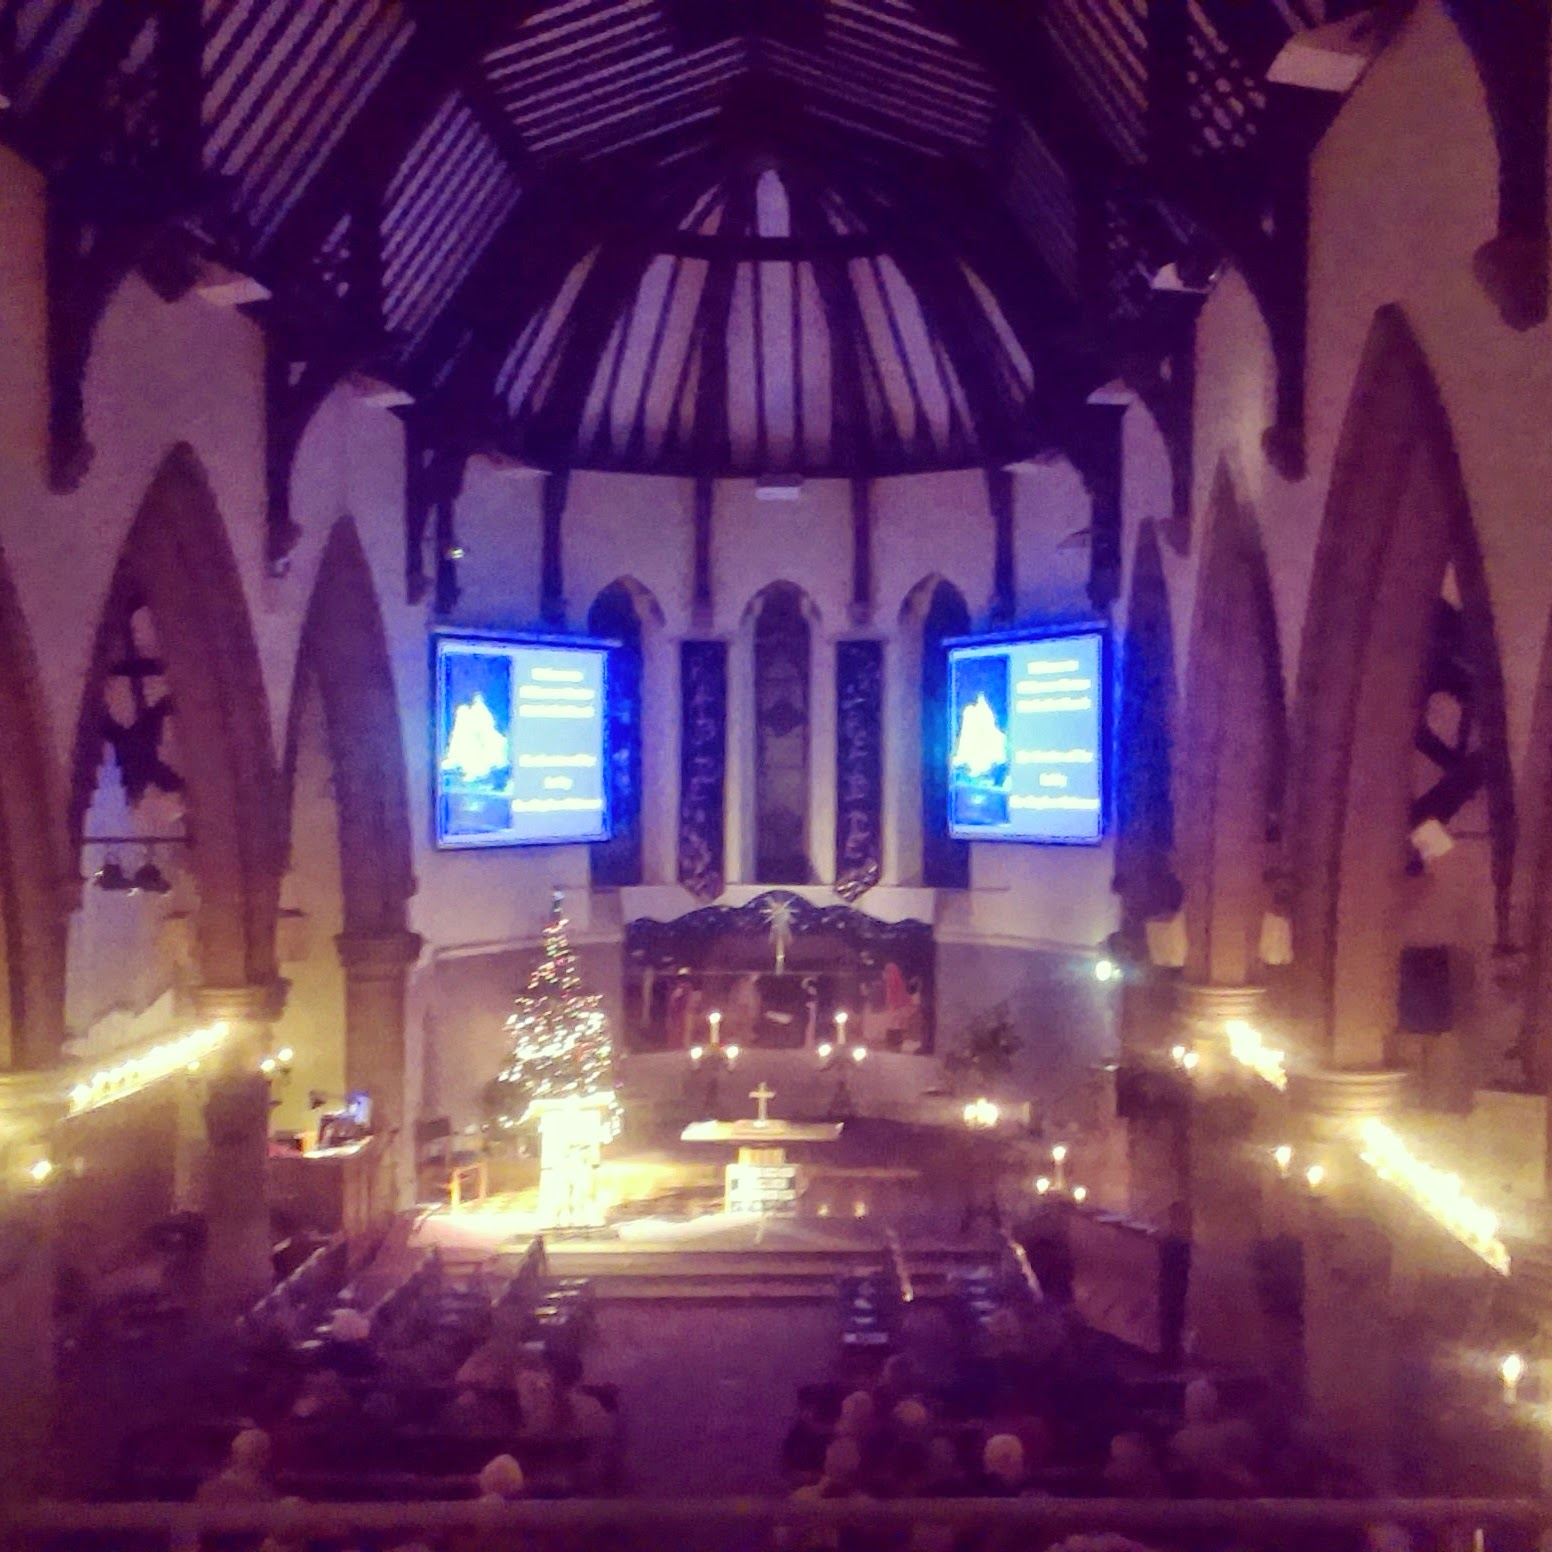 Candlelit carol service at church